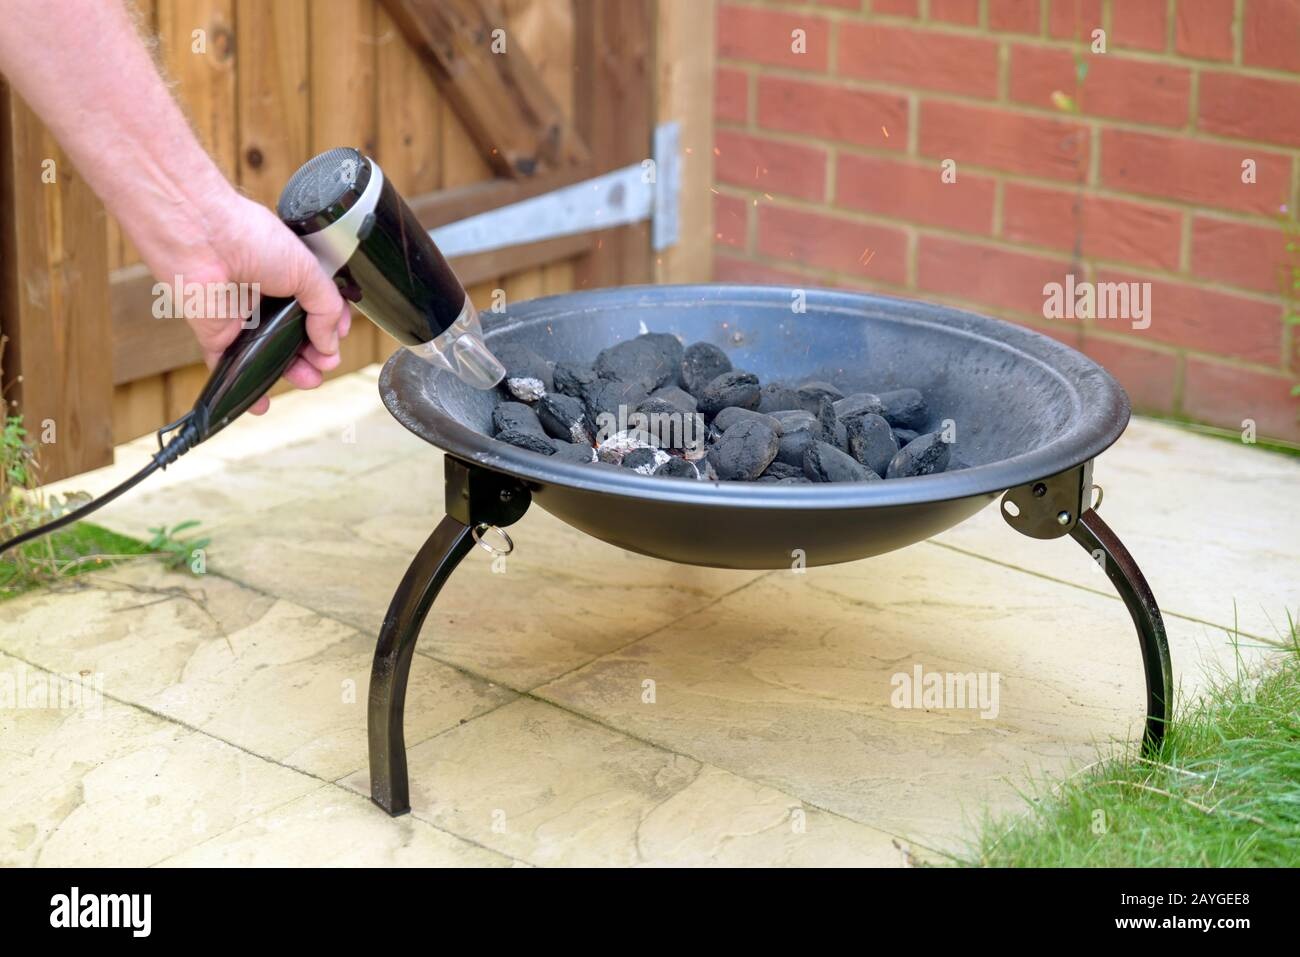 Bbq Grill Charcoal Starting Fire With Hair Dryer In Backyard In England Uk Stock Photo Alamy